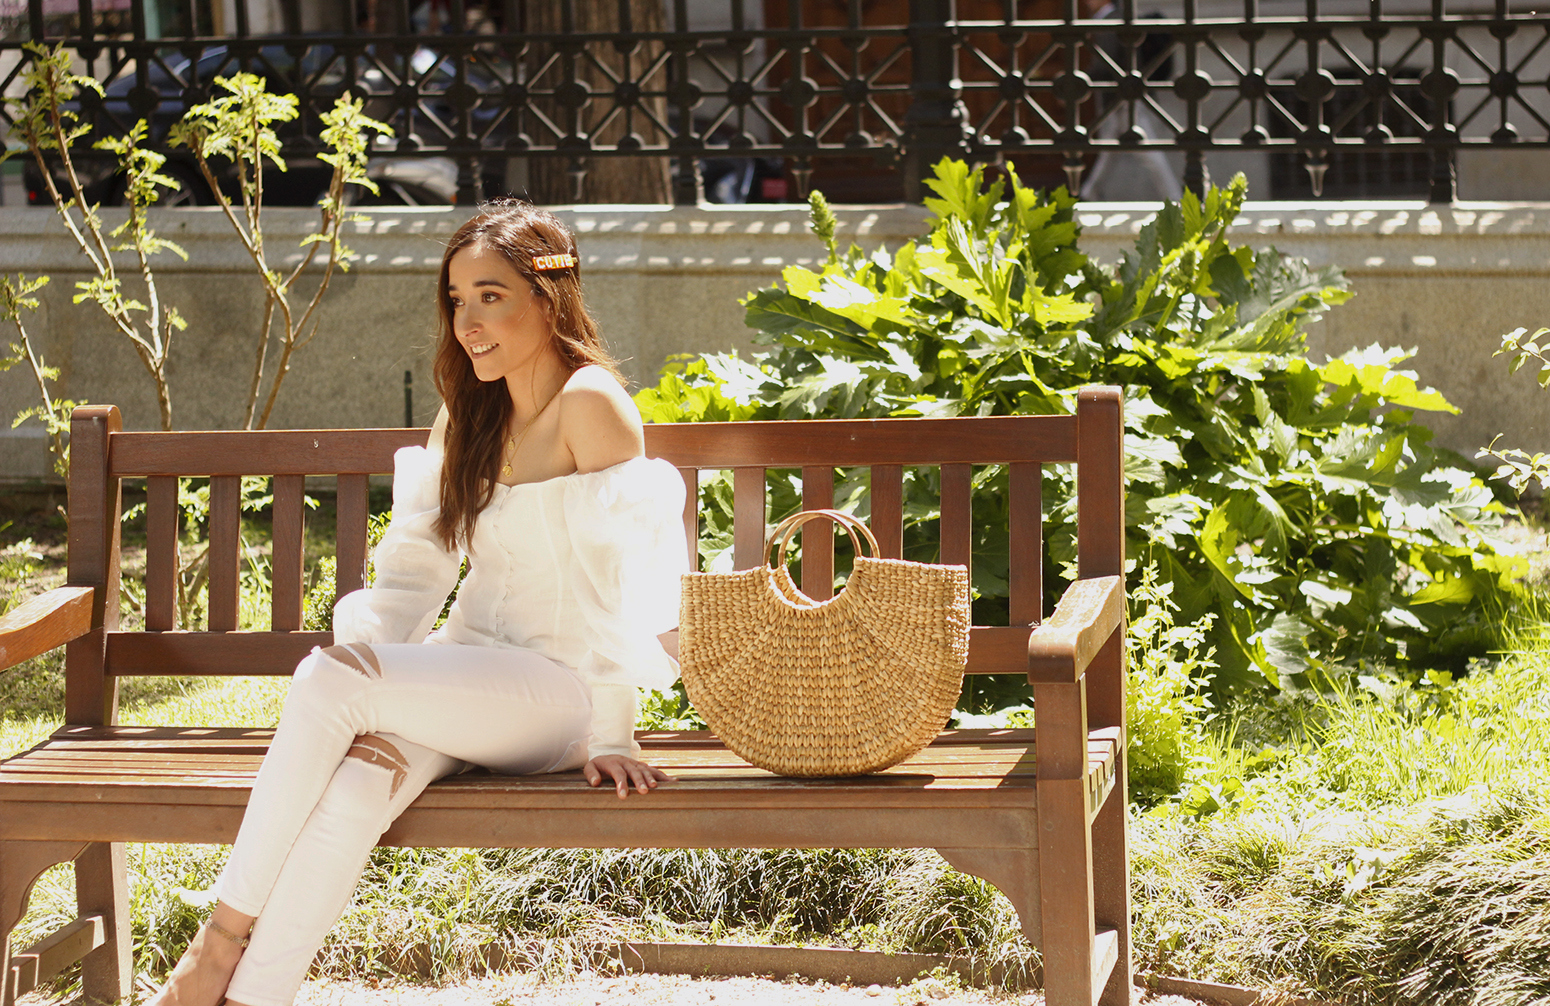 White Linen Top jeansstraw bag street style outfit 201912